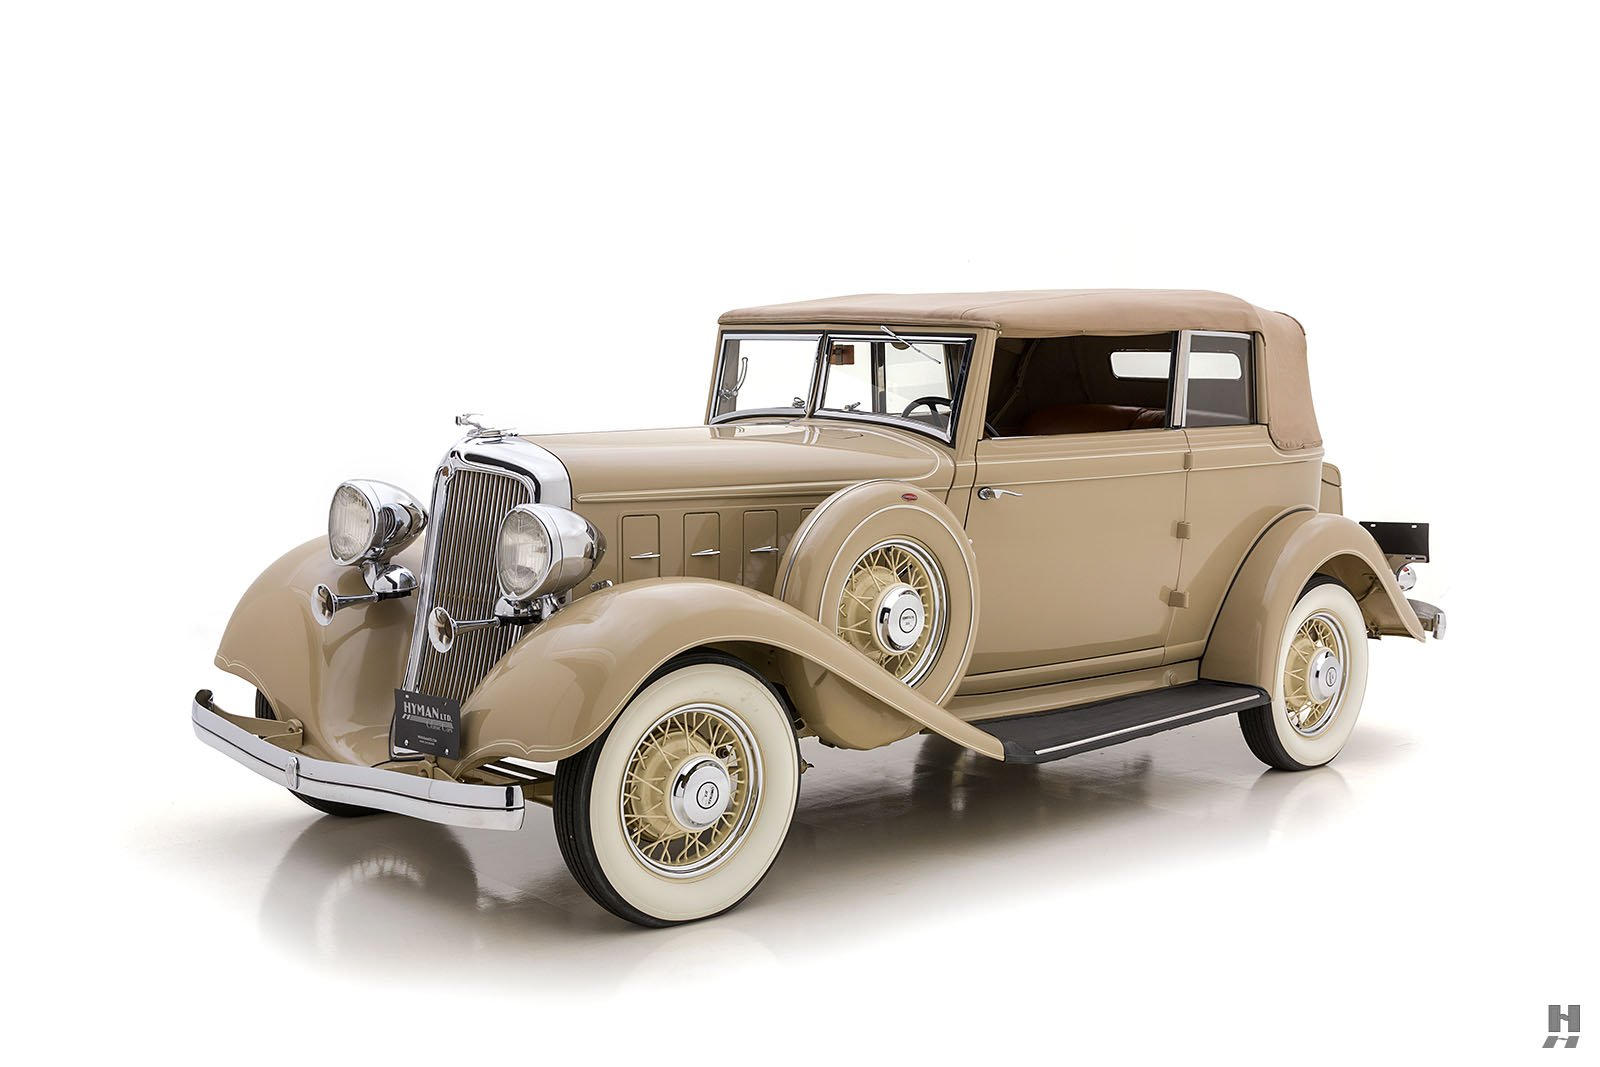 1933 Chrysler CO Six For Sale   Vintage Driving Machines